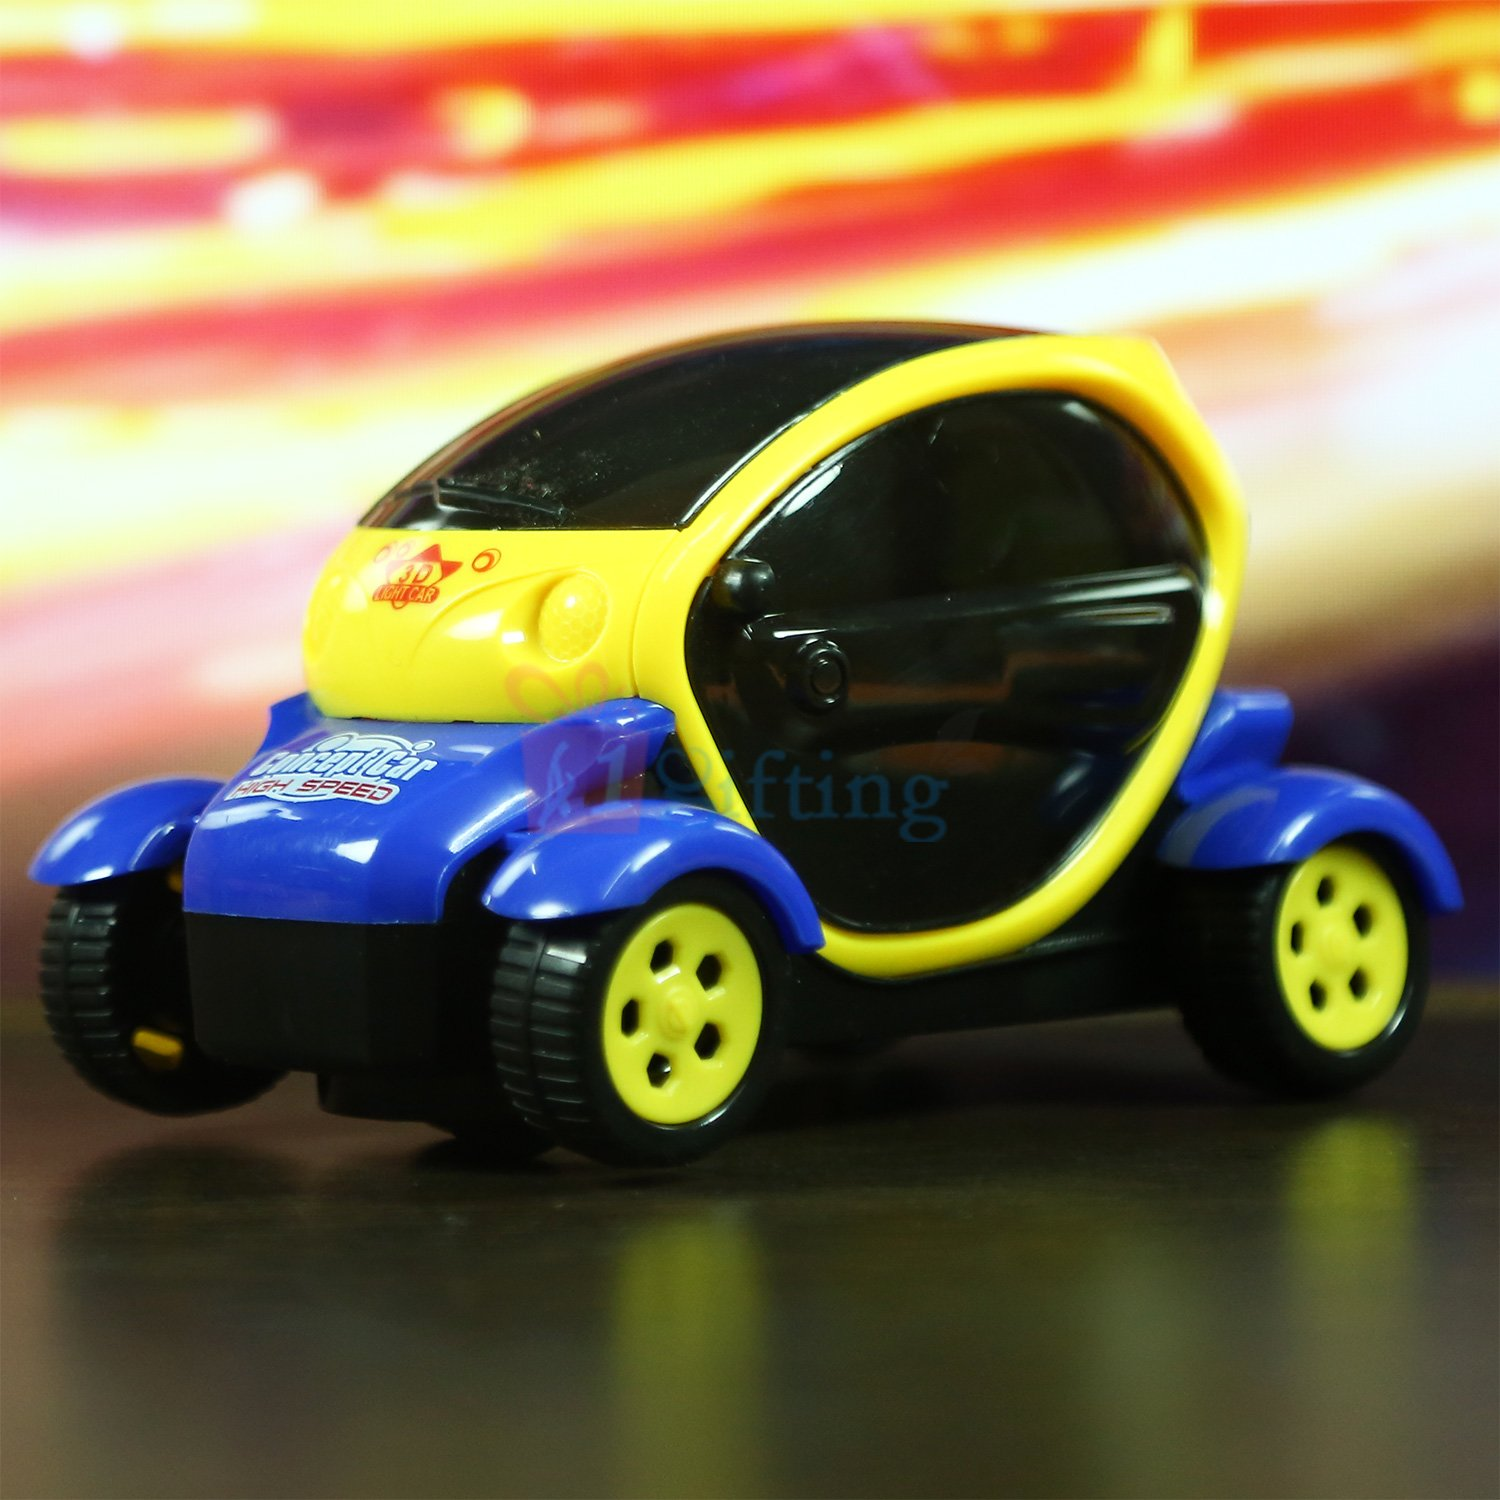 Auto Turning Chhota Bheem Racing Car Toy for Kids